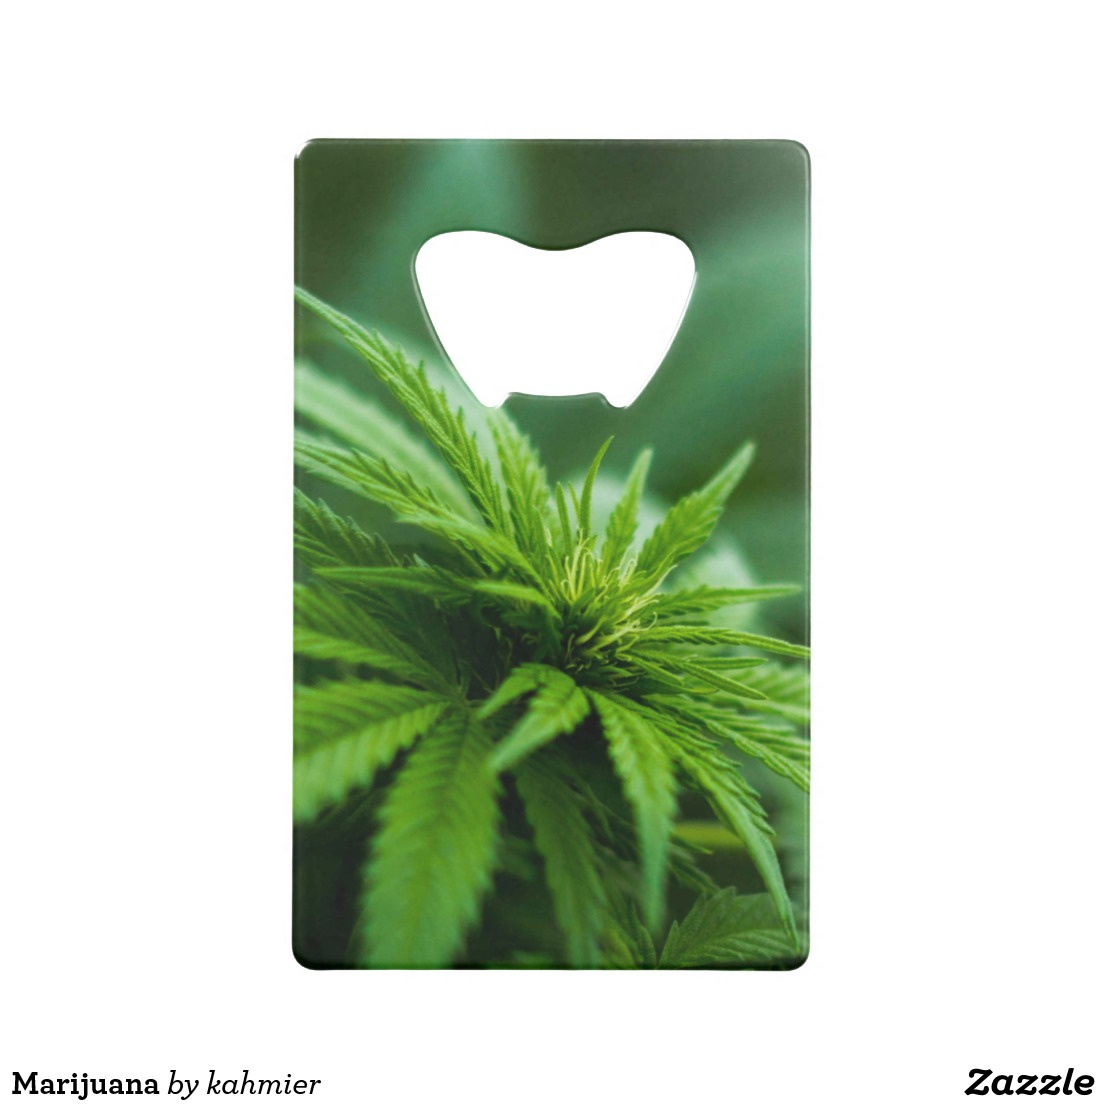 Marijuana Credit Card Bottle Opener